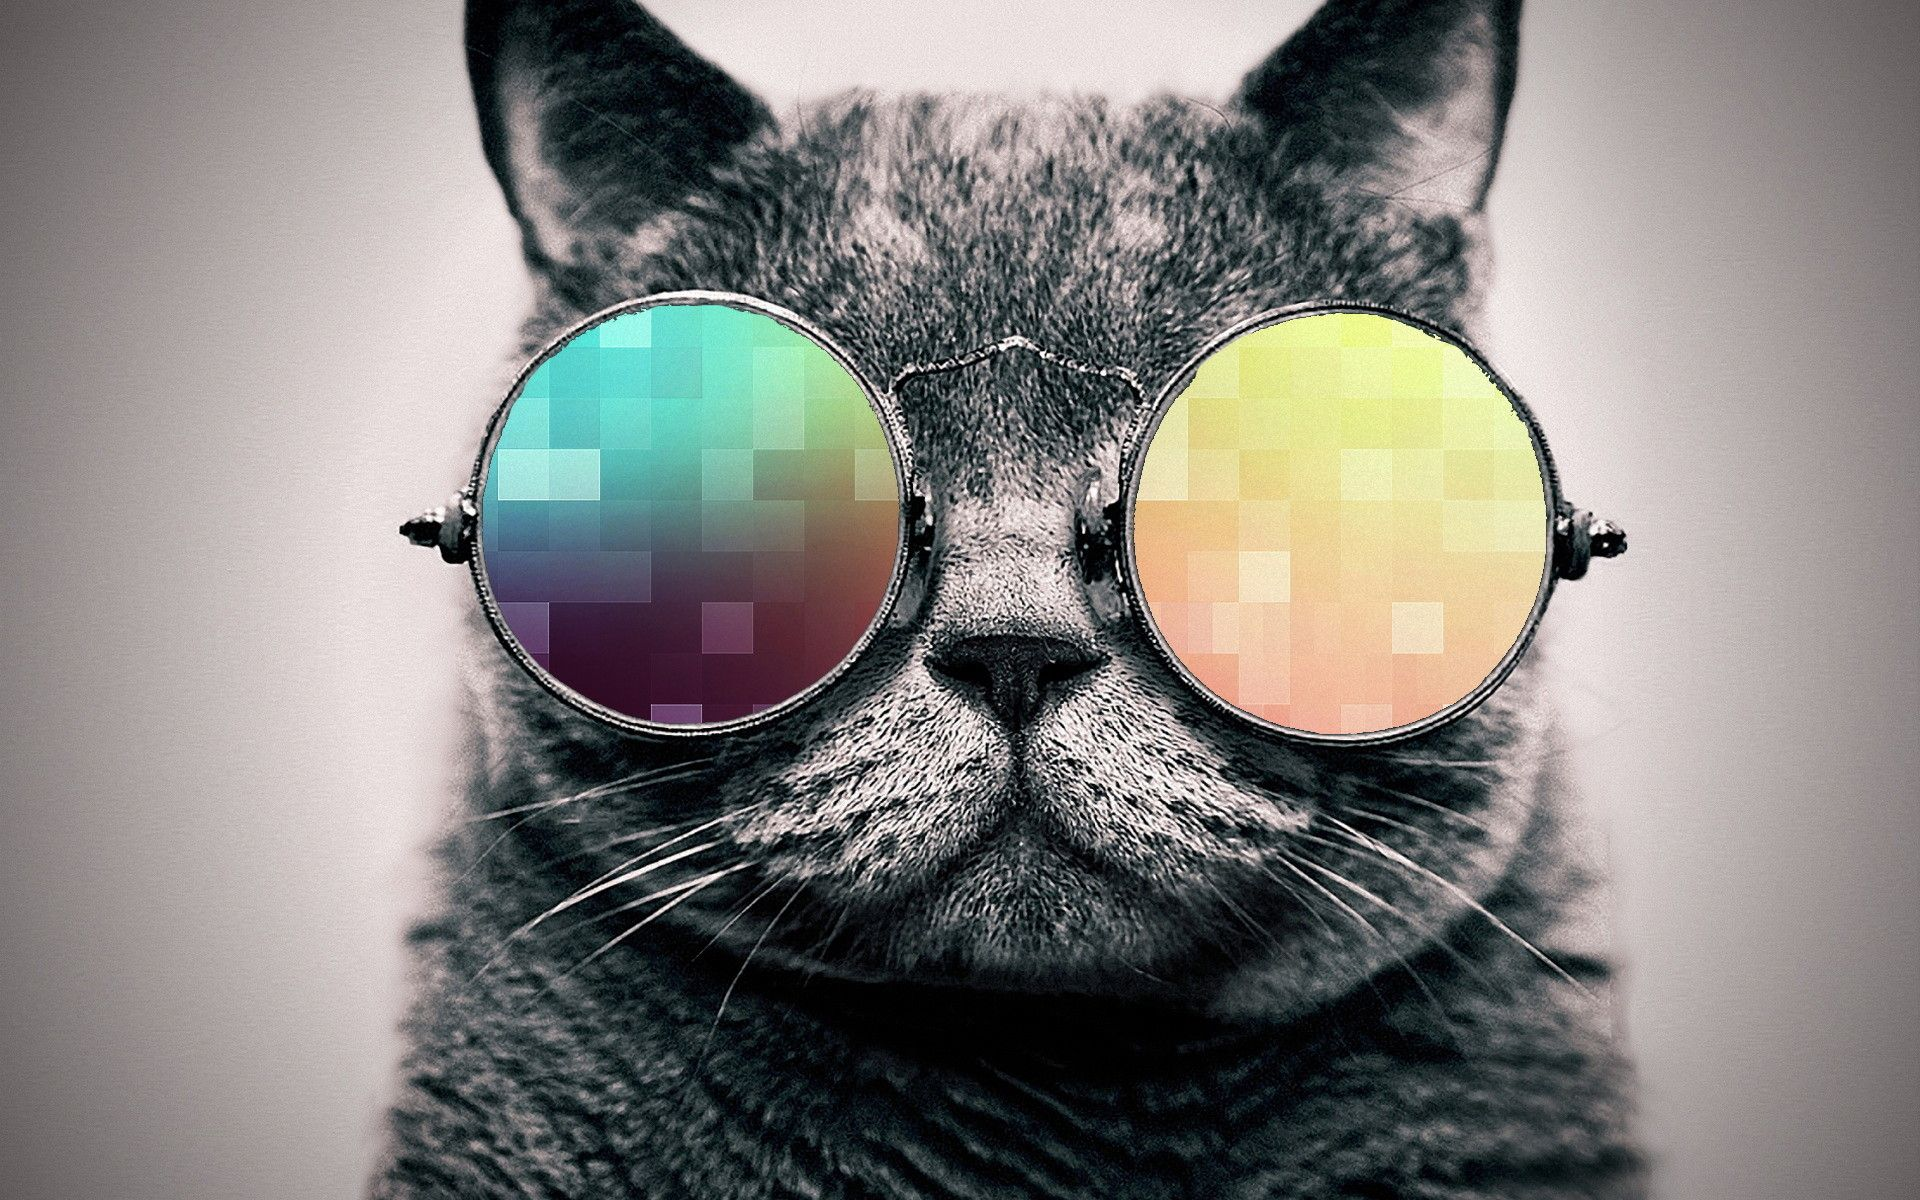 1920x1200 cool cat wallpaper. By ToValhalla Download 1920